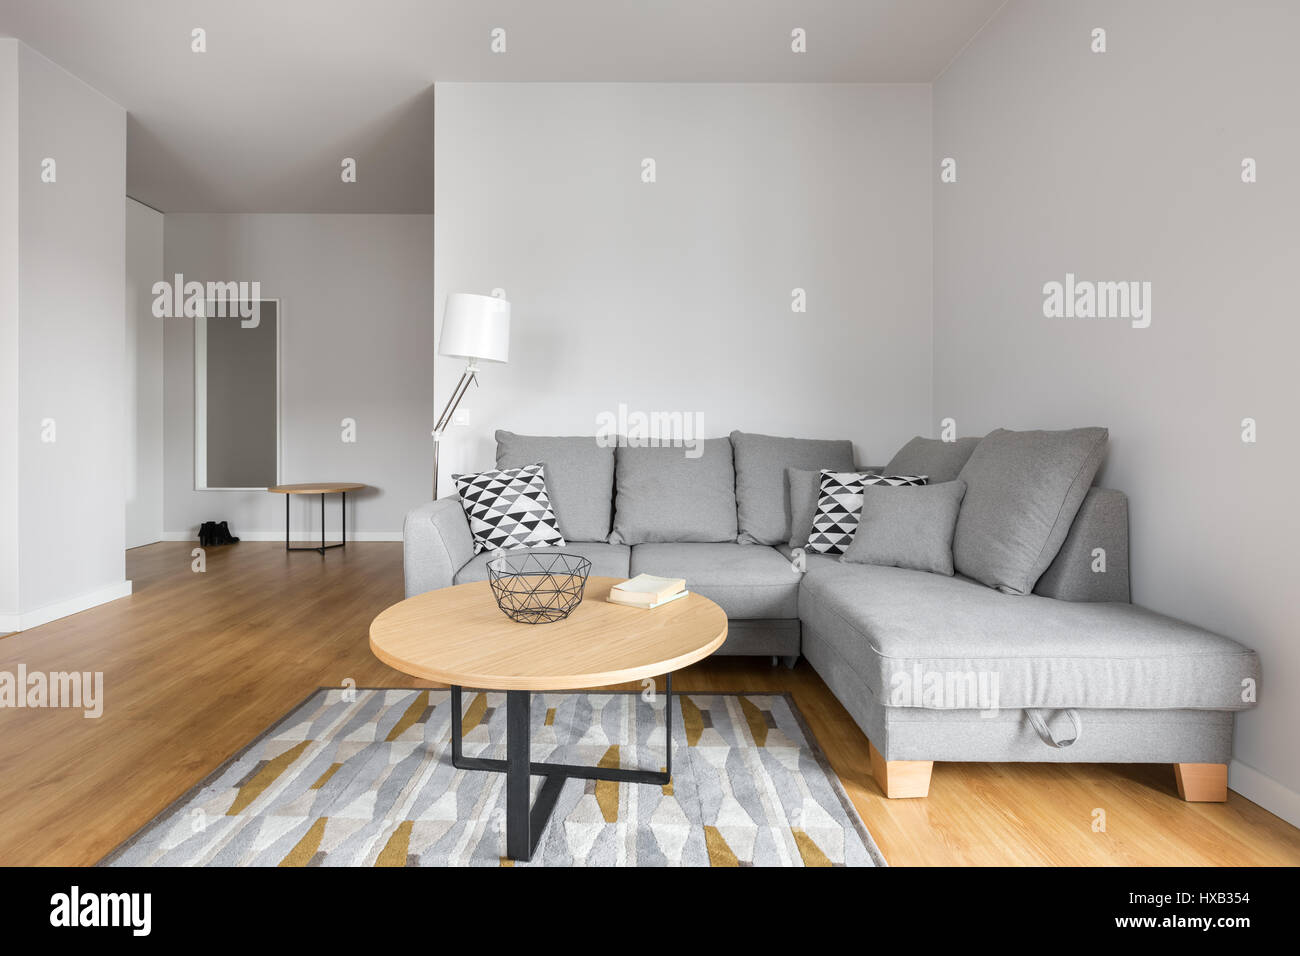 Living Room With Grey Sofa Modern Living Room With Grey Sofa With Decorative Pillows And